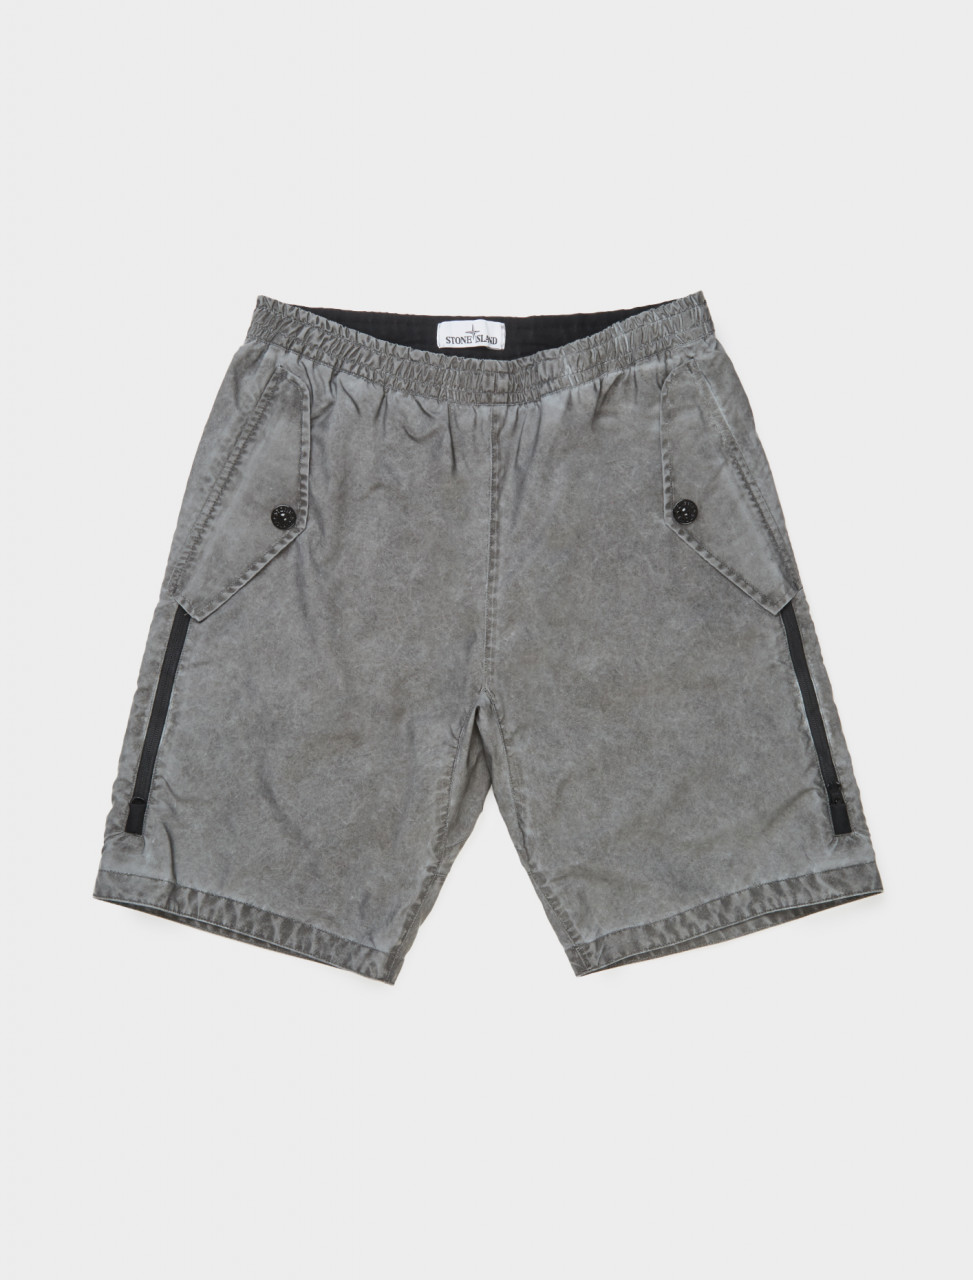 Front view of Stone Island Plated Reflective Shorts in Dark Grey